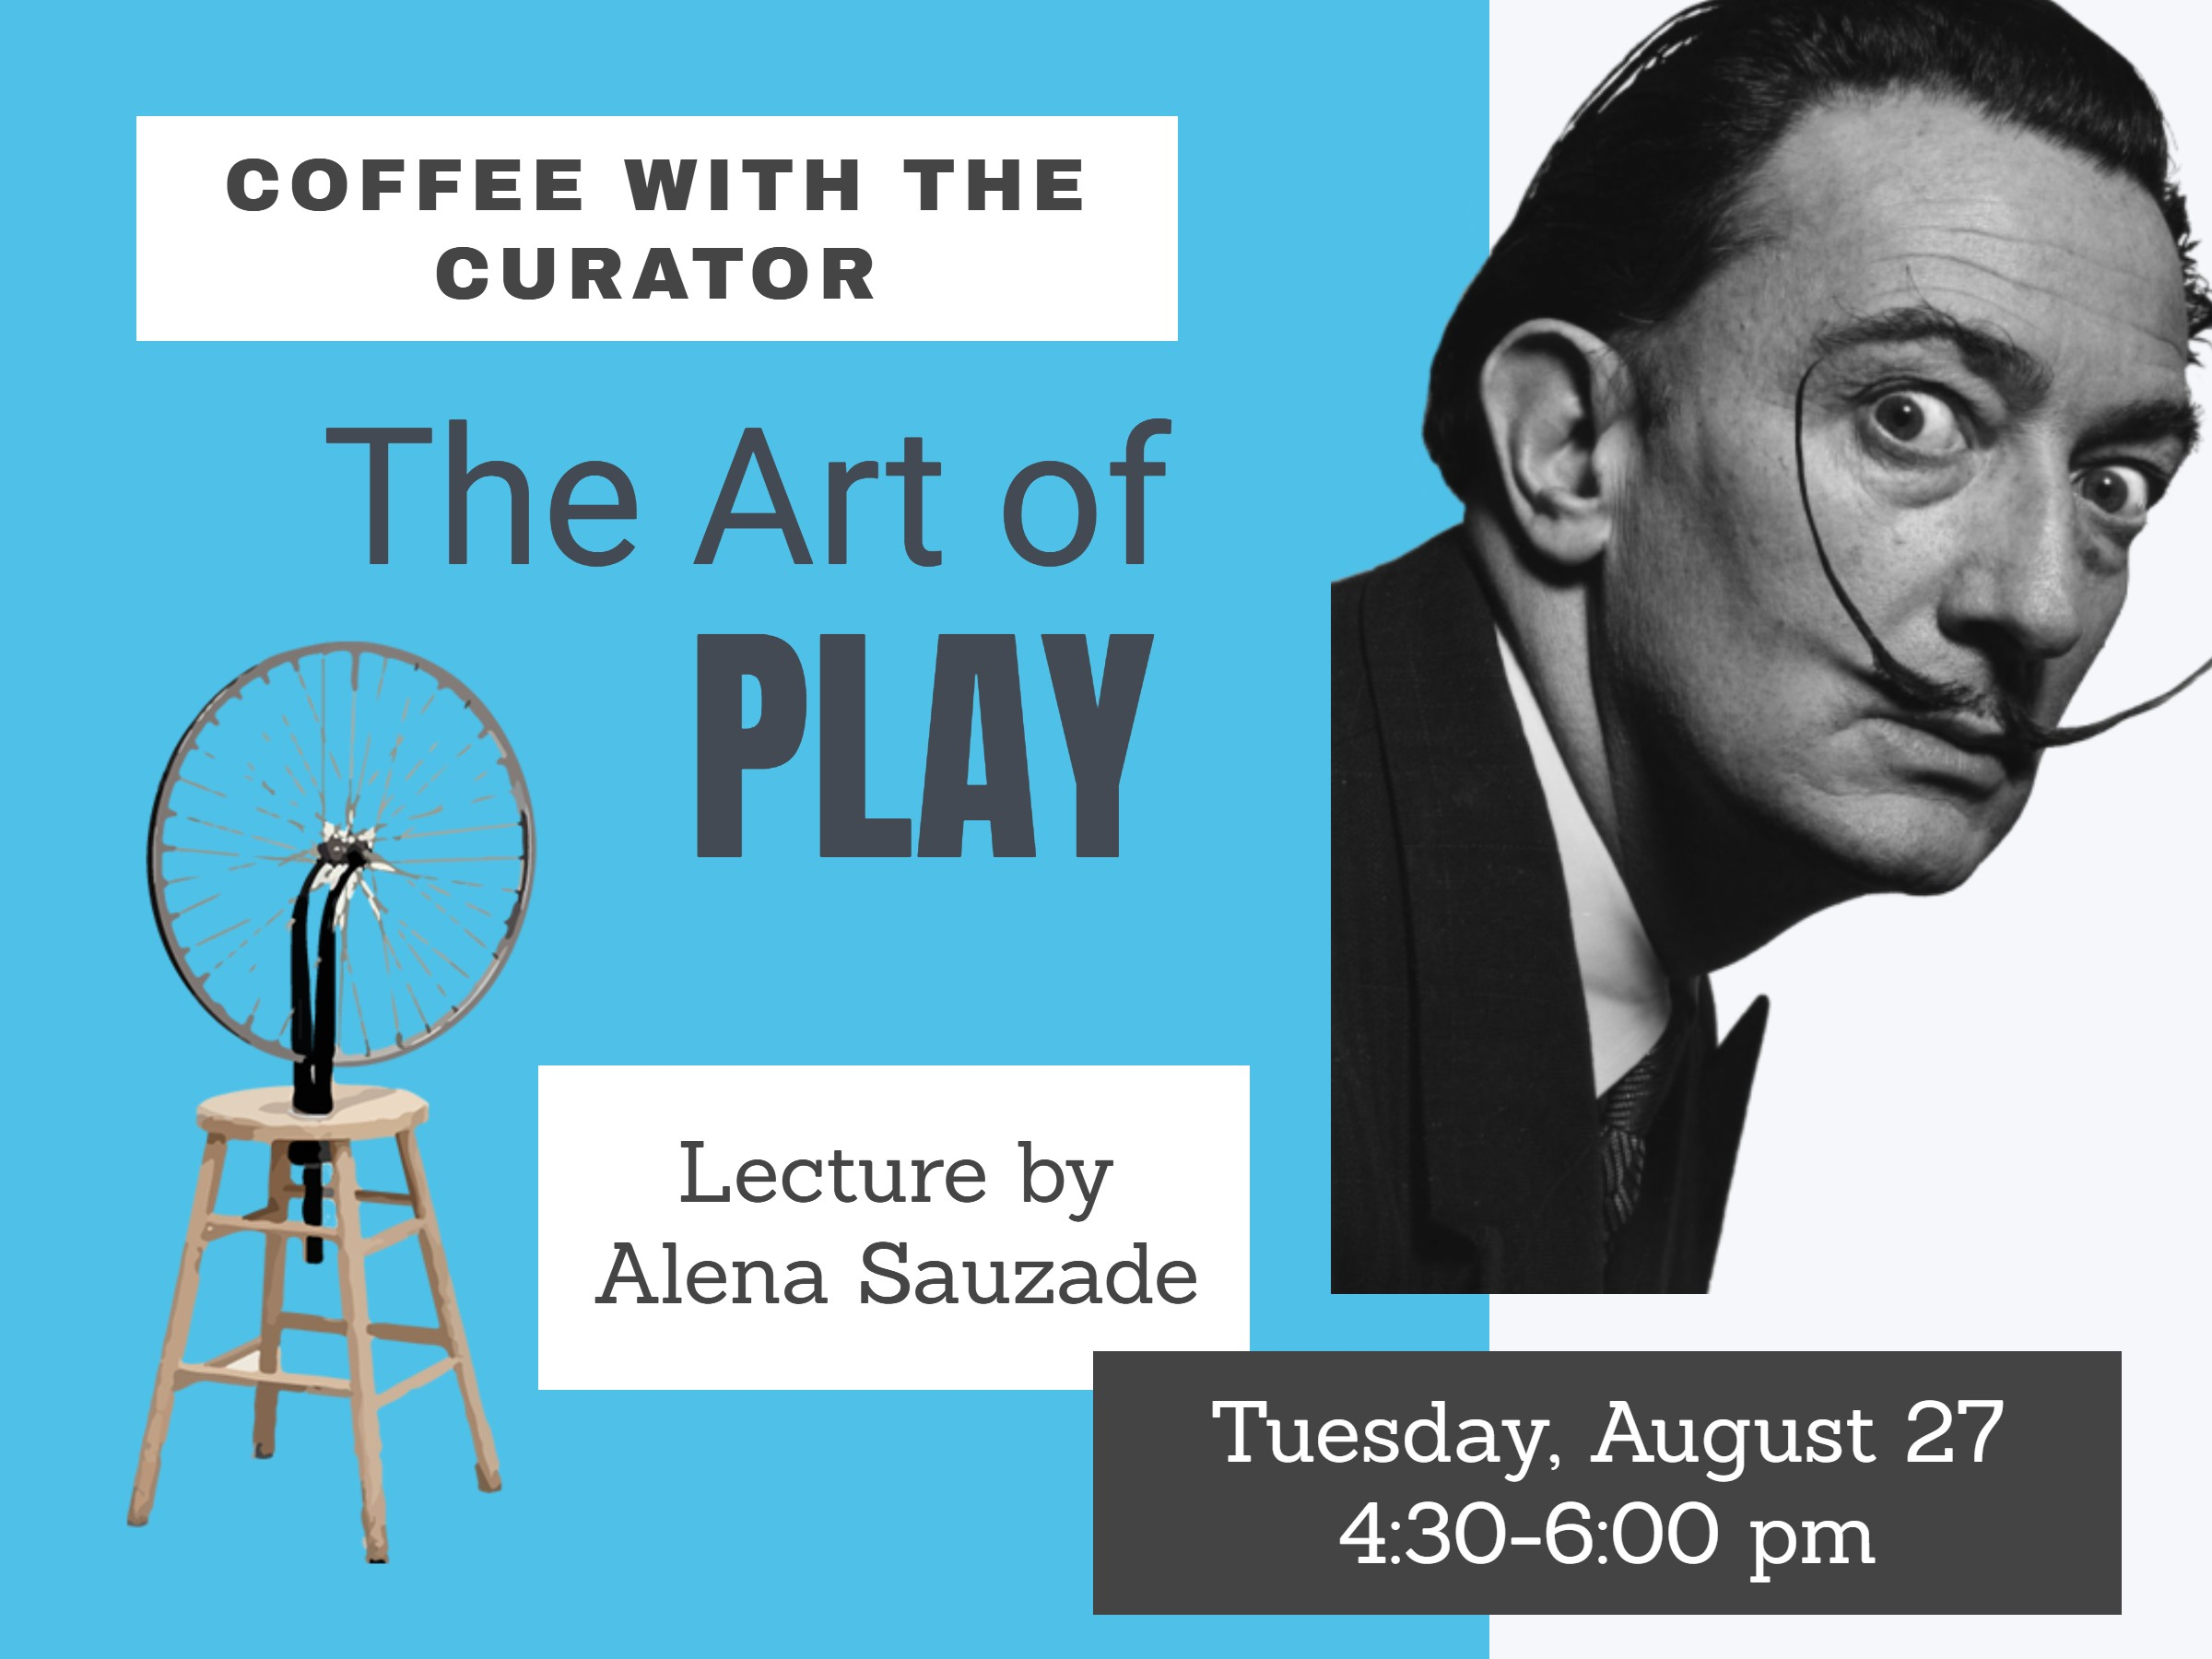 Coffee with the Curator: The Art of Play